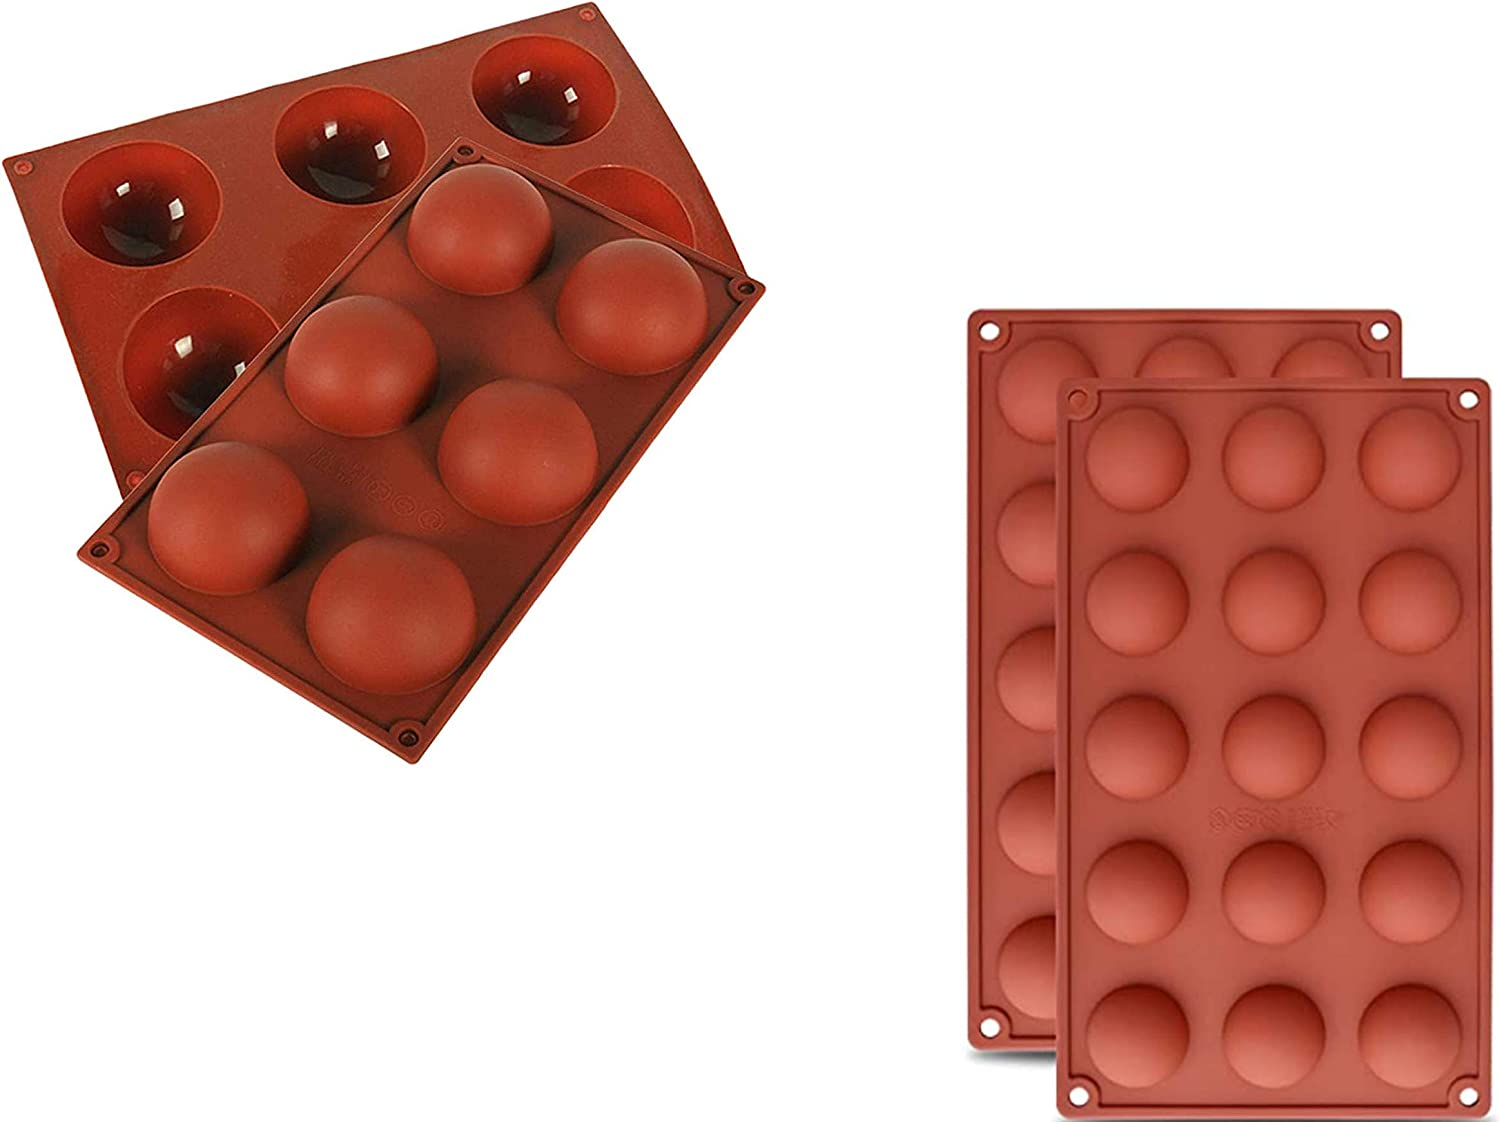 Semi Sphere Chocolate Bomb Silicone Mold (4pc set, includes 2 six cavity and two 15 cavity) for Baking, ice tray, hot chocolate bombs, Cake, Jelly, Dome Mousse and more,